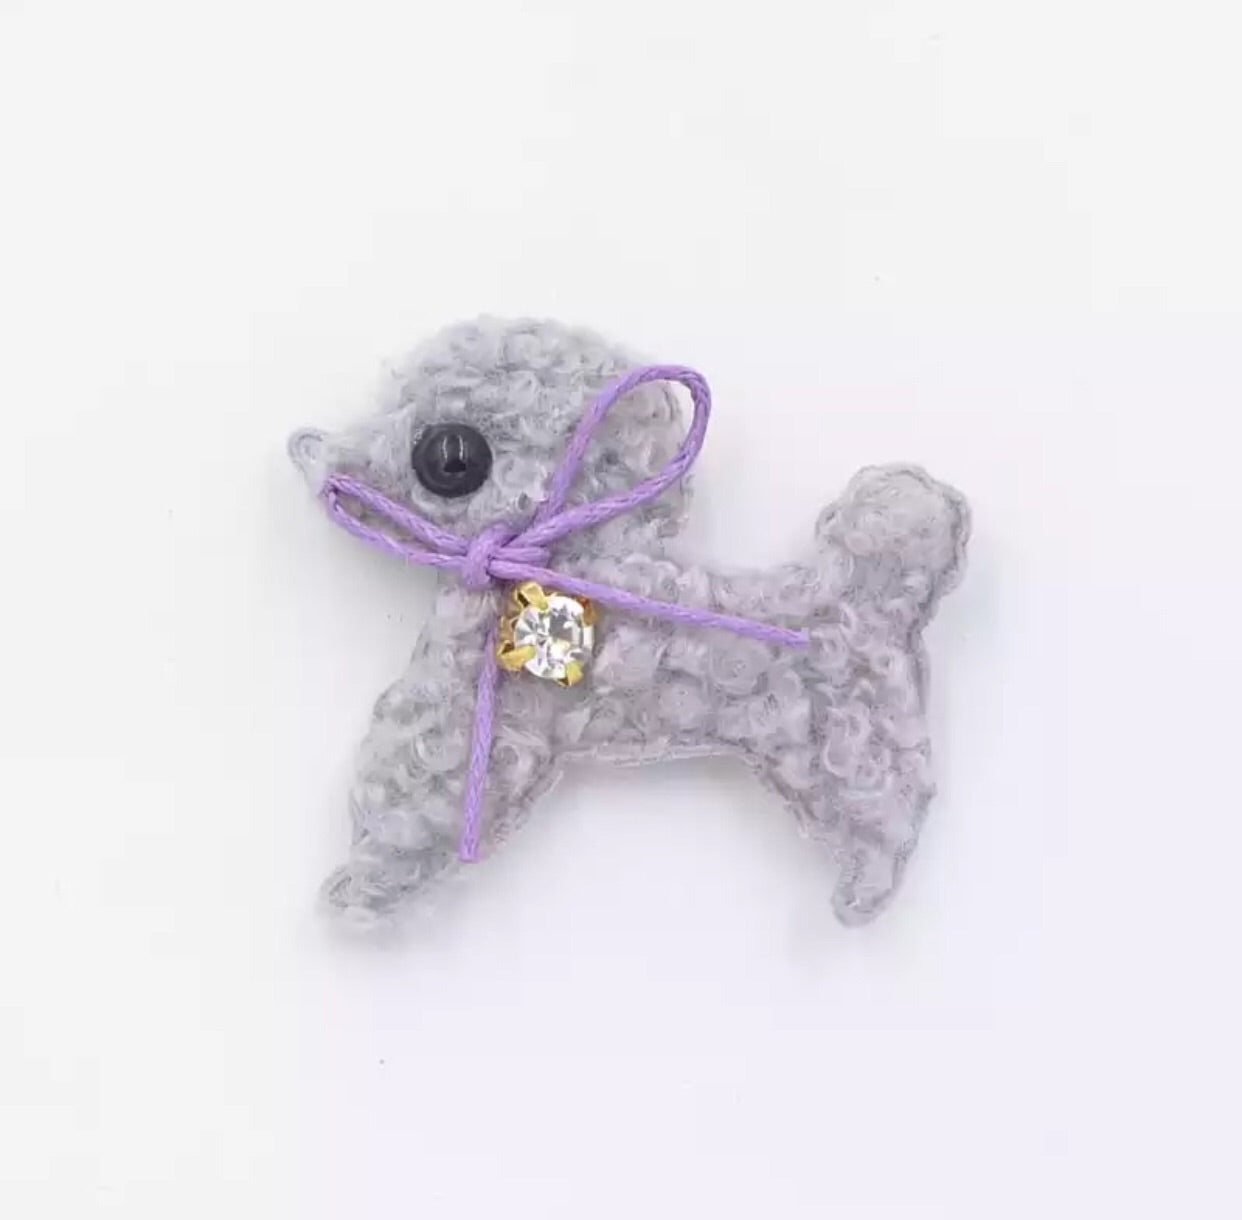 Doggy Plush Applique - Choose Your Color - shabbyflowers.com